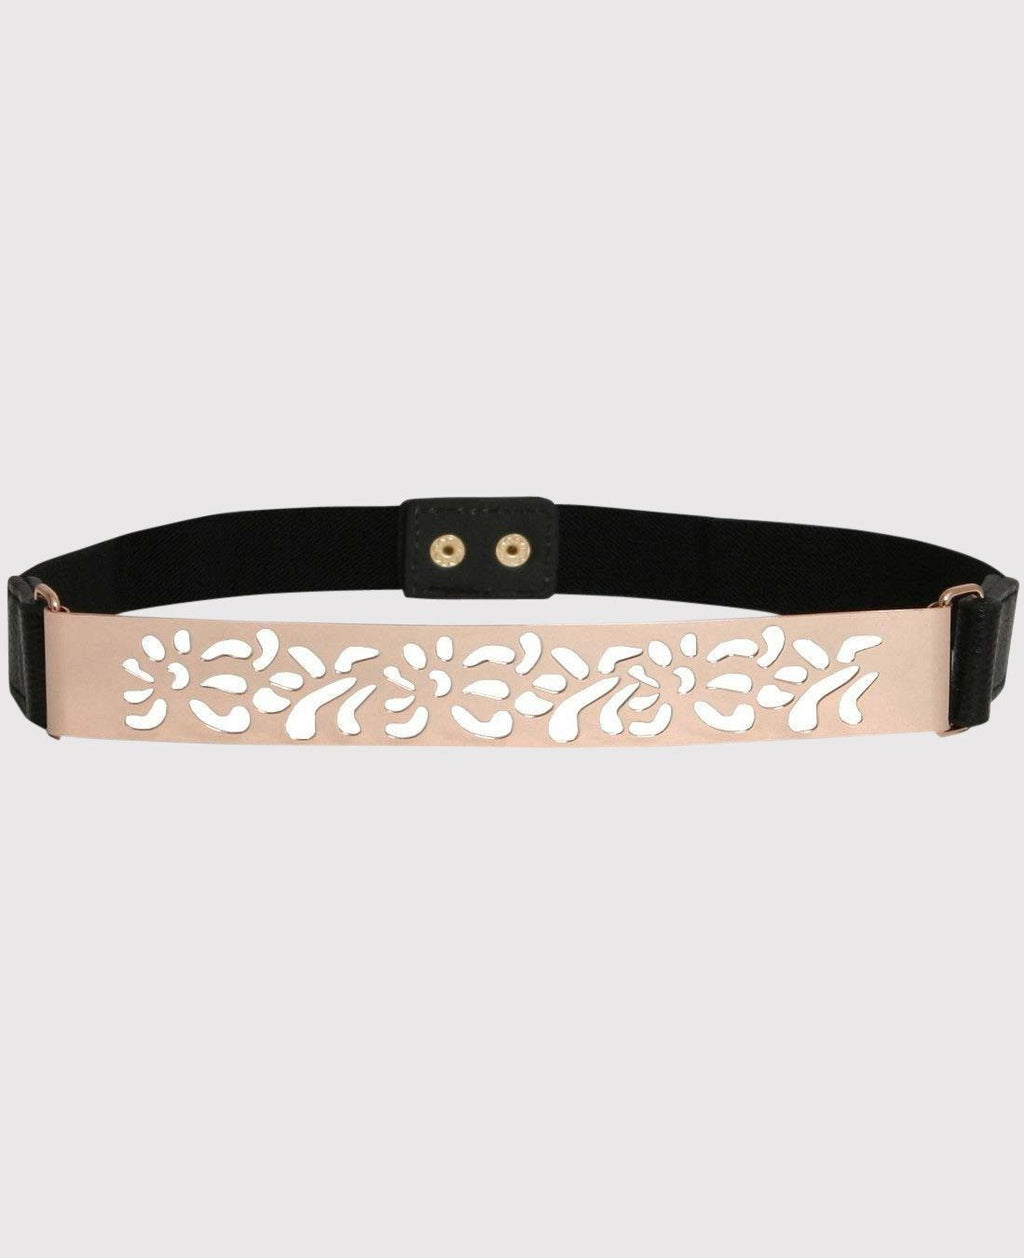 Cut Out Metal Plate Belt in Black FRONT